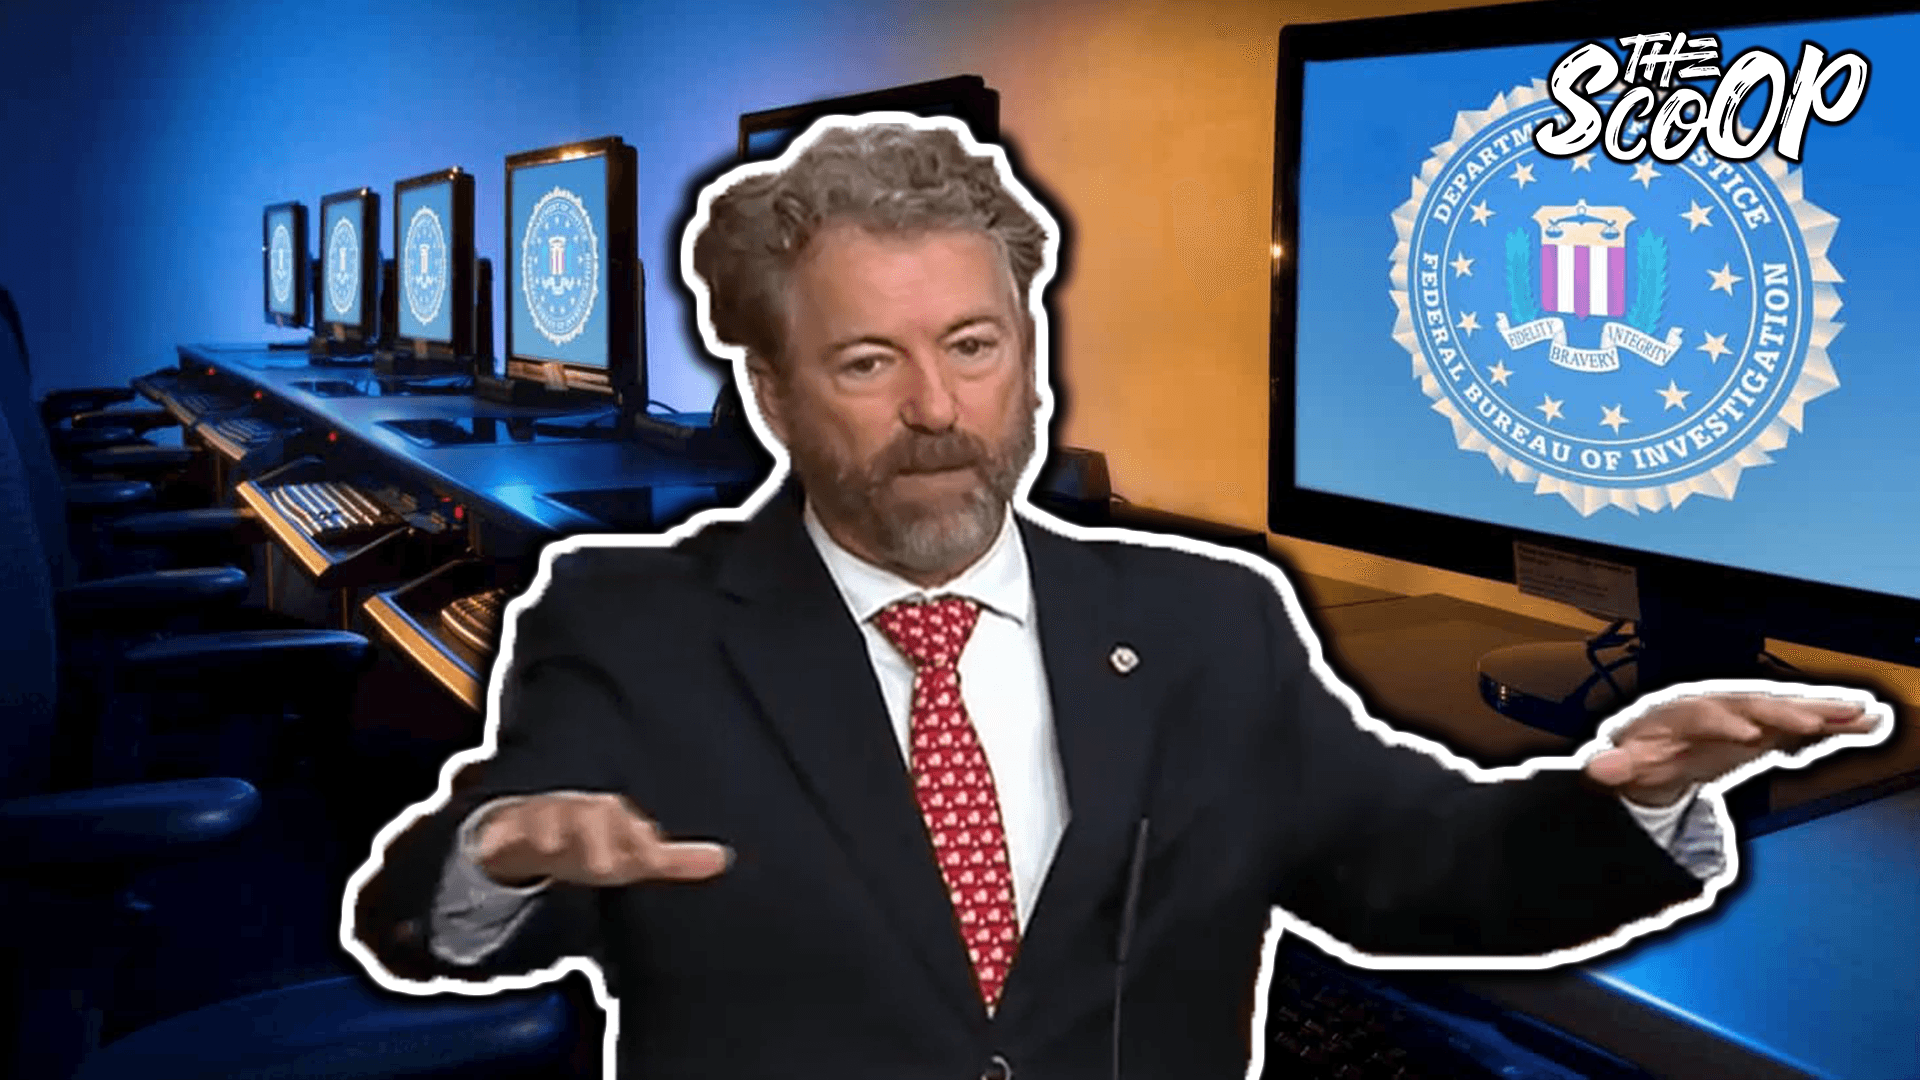 WATCH: Rand Paul SLAMS Bill Passed By Senate That Allows FBI To Keep Surveilling Your Internet Browsing History Without A Warrant